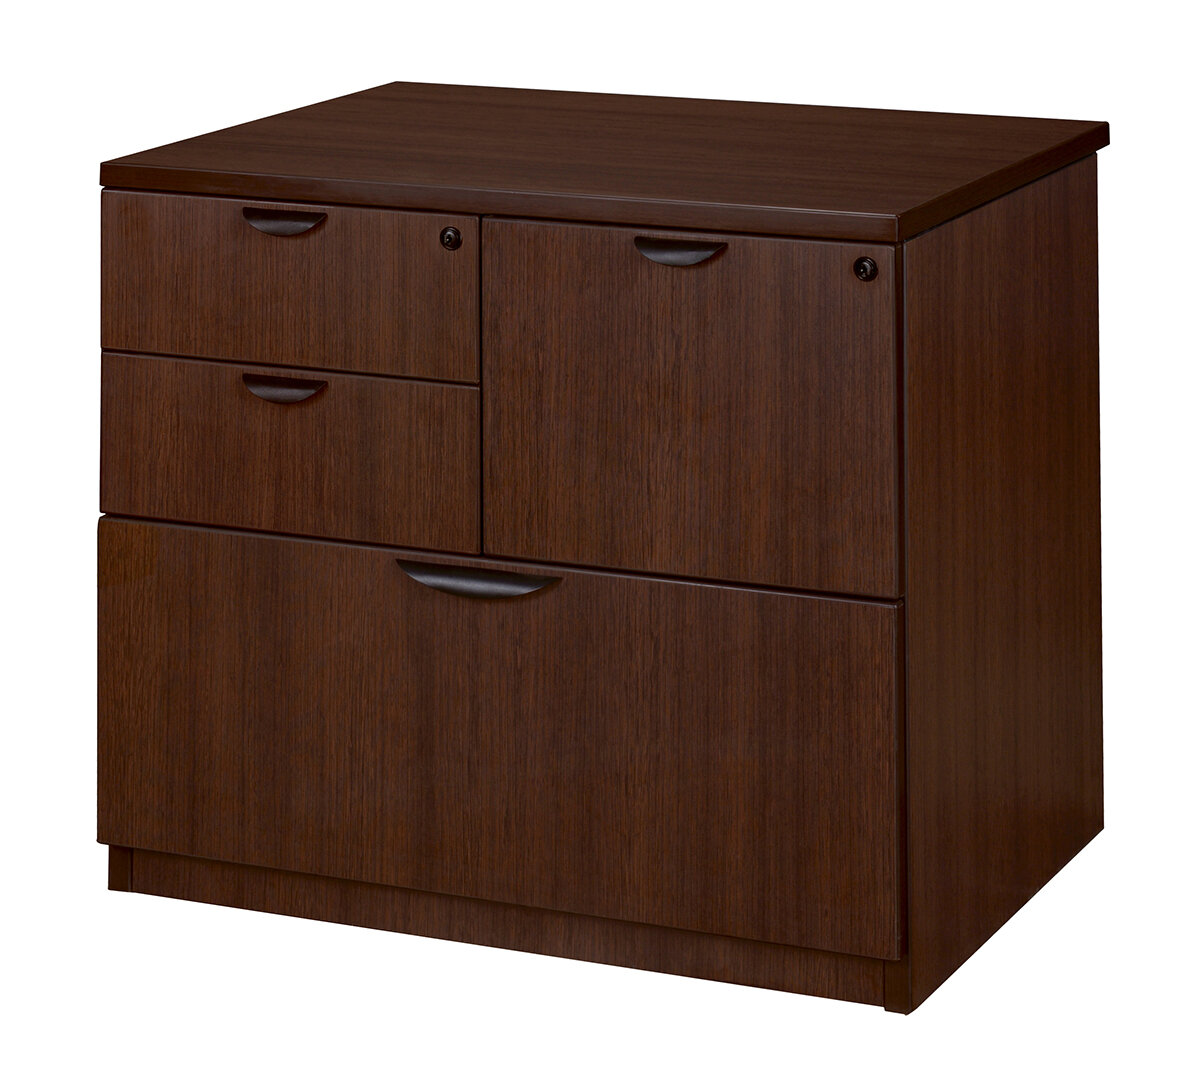 Latitude Run Linh Combo 4 Drawer Lateral Filing Cabinet | Wayfair